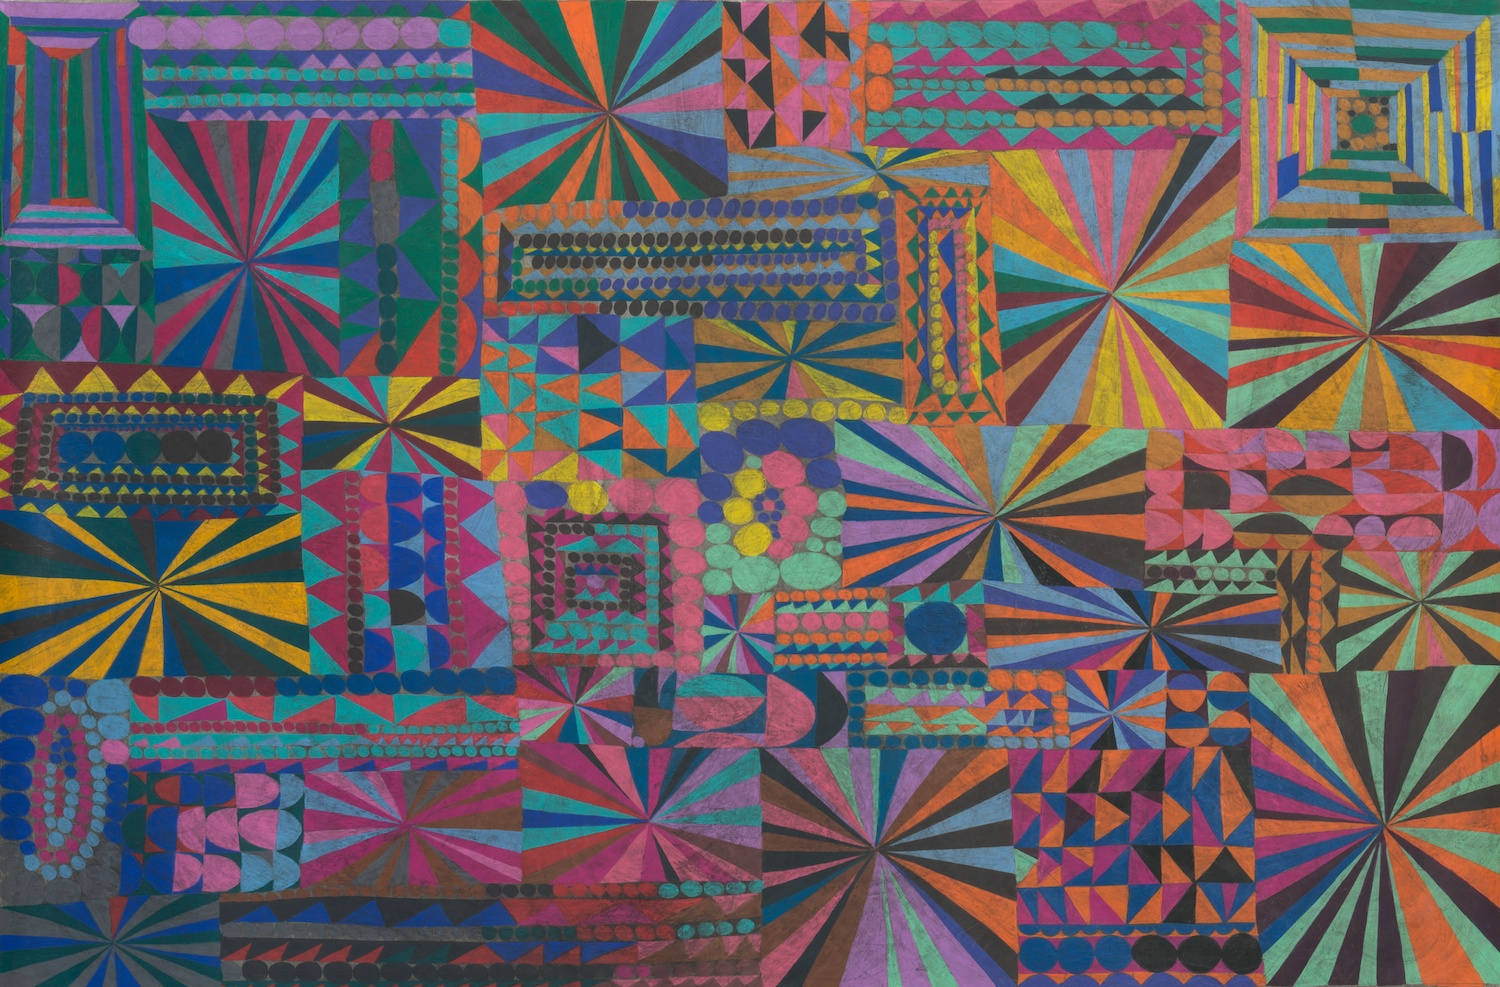 William J. O'Brien  Untitled  2013 Colored pencil and ink on paper 62h x 72w in WOB931